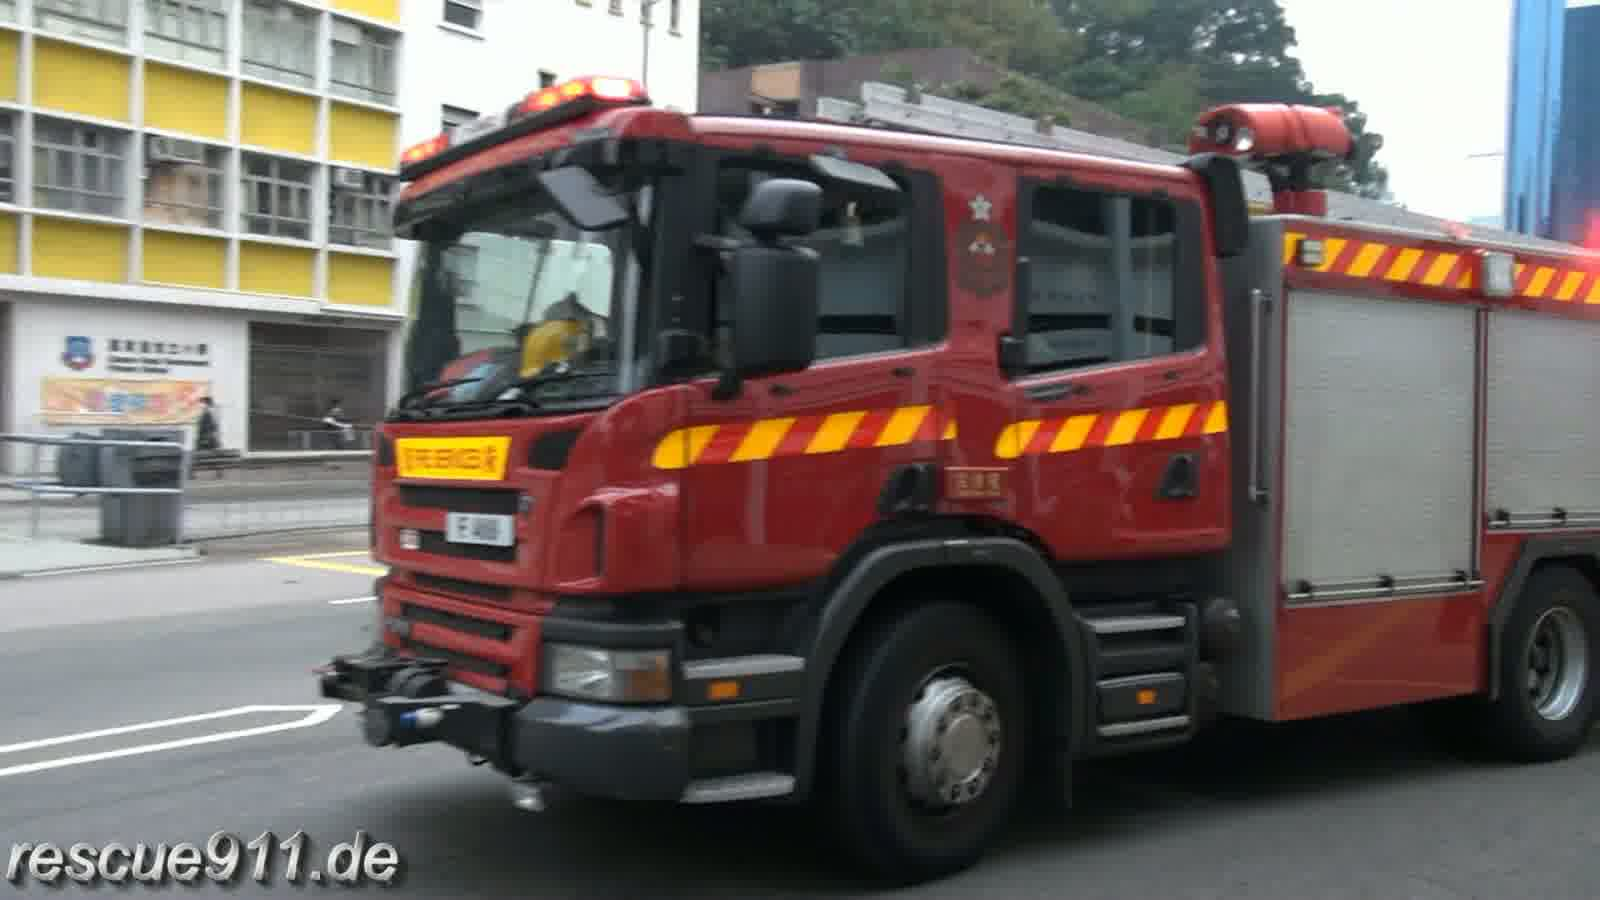 Major Pump HKFSD Tsim Sha Tsui Fire Station (stream)